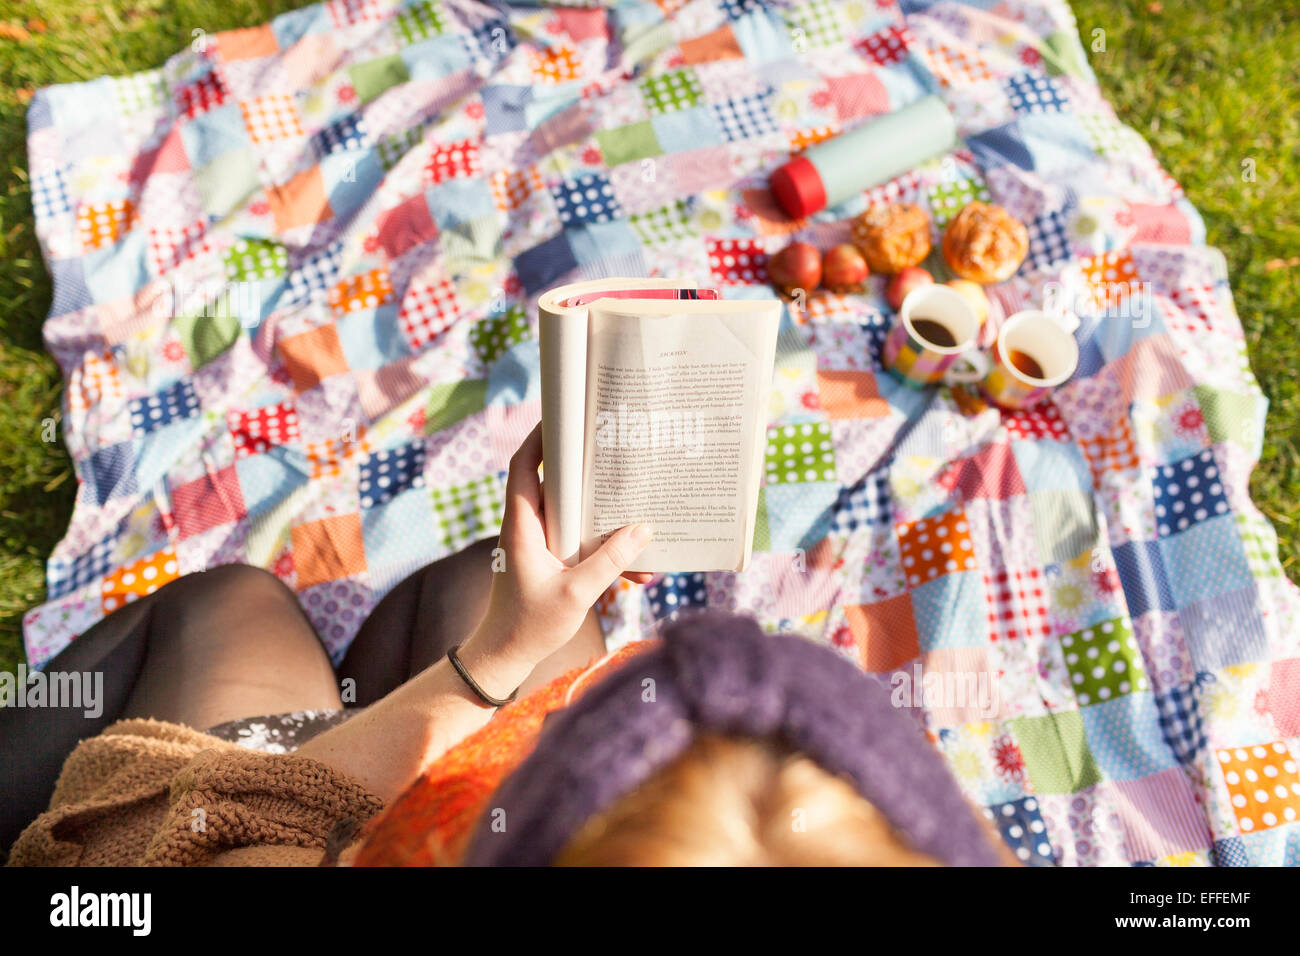 High angle view of young woman reading book on picnic blanket Photo Stock